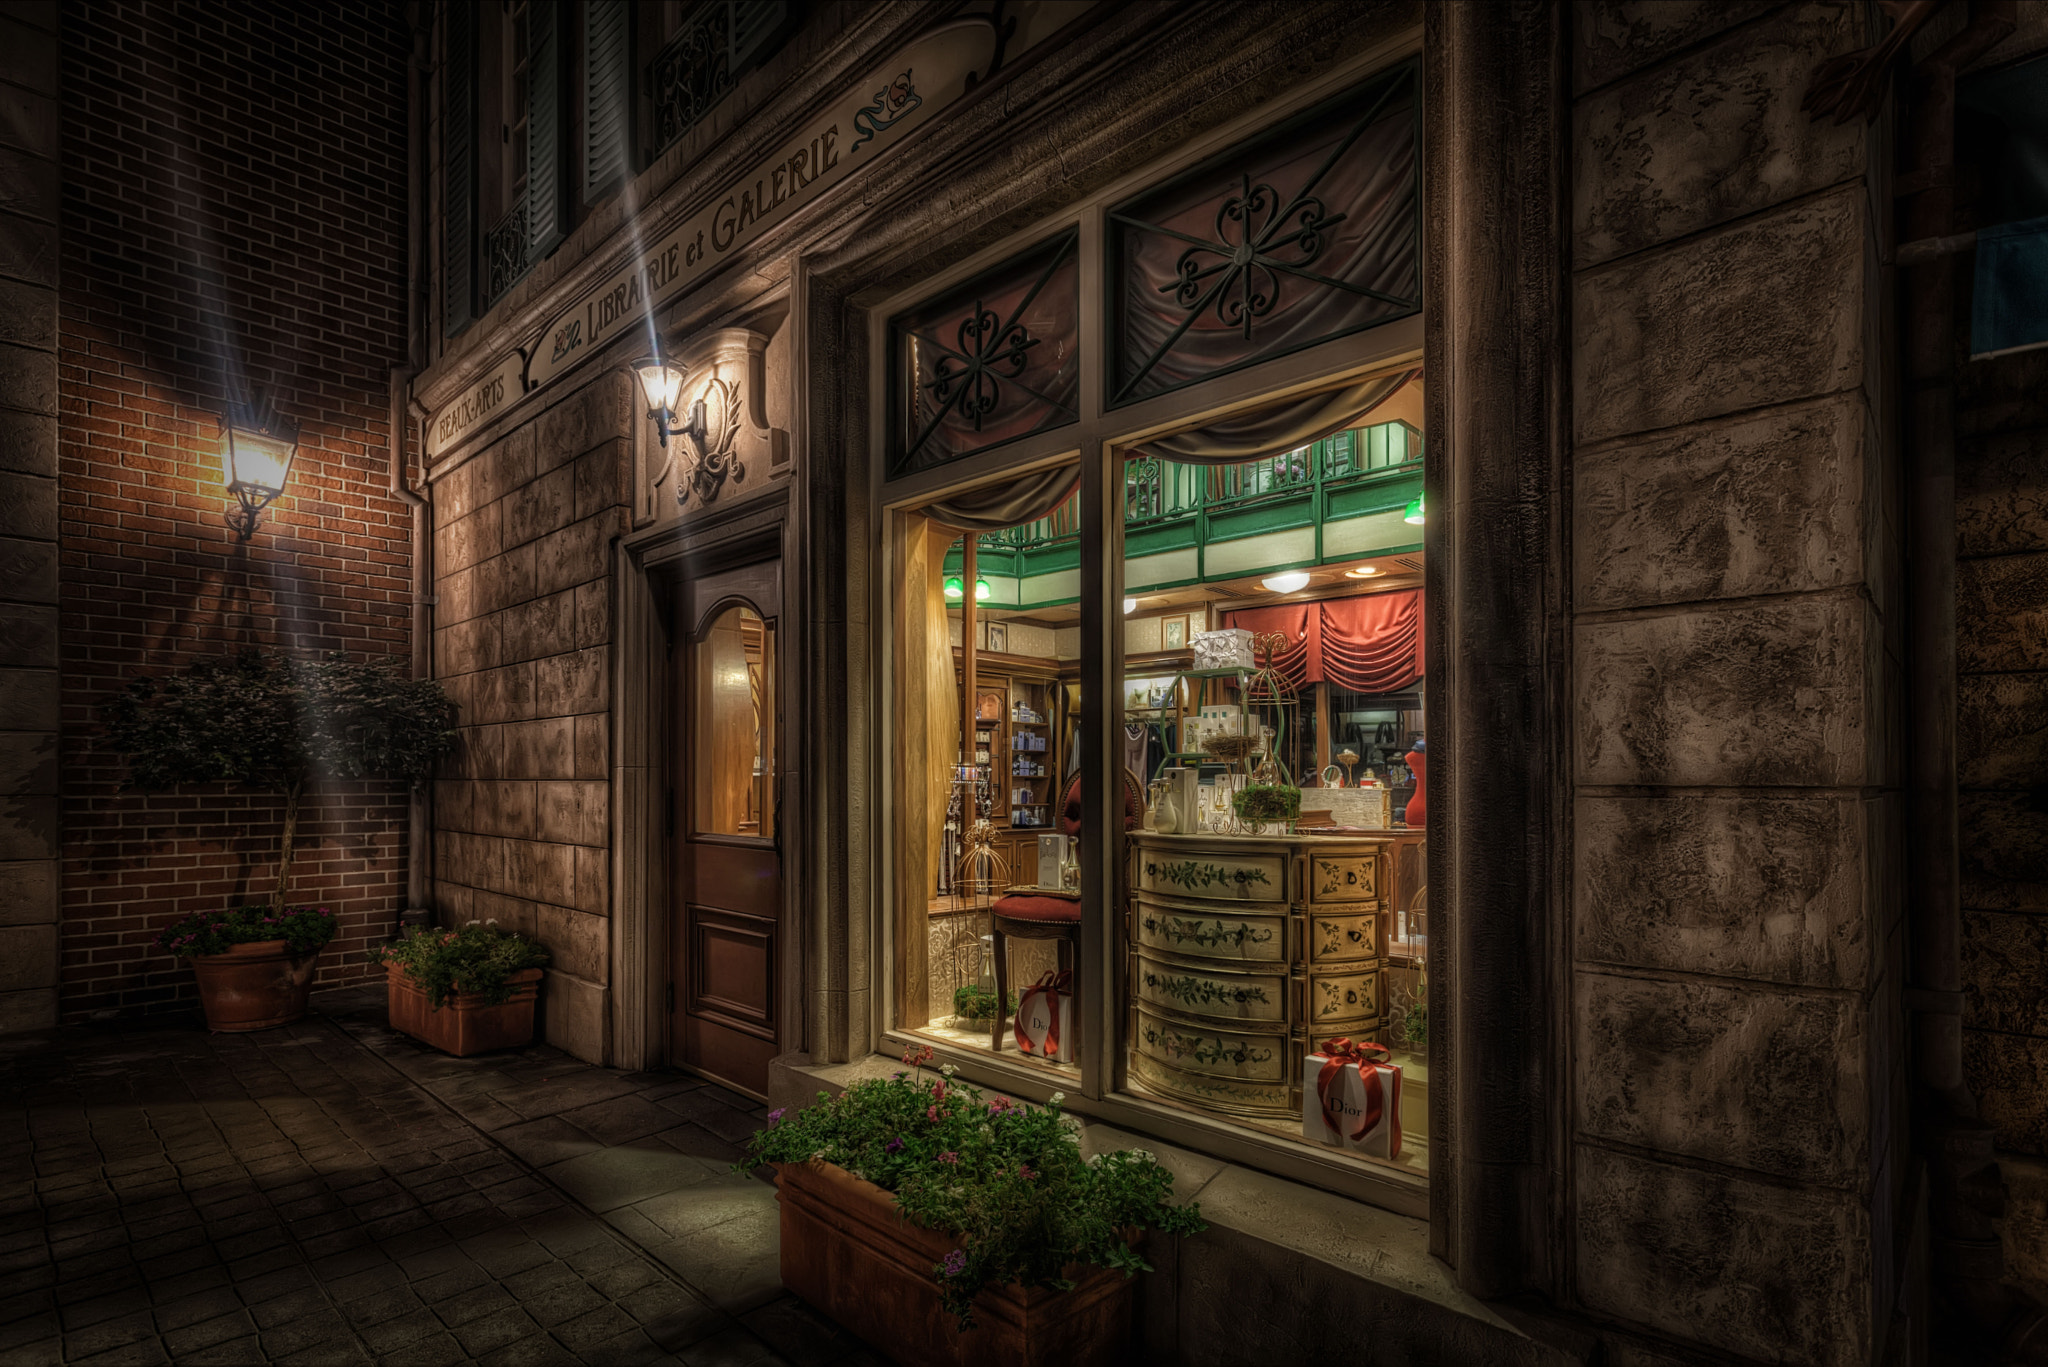 Photograph Closed for the Night by Marc Perrella on 500px